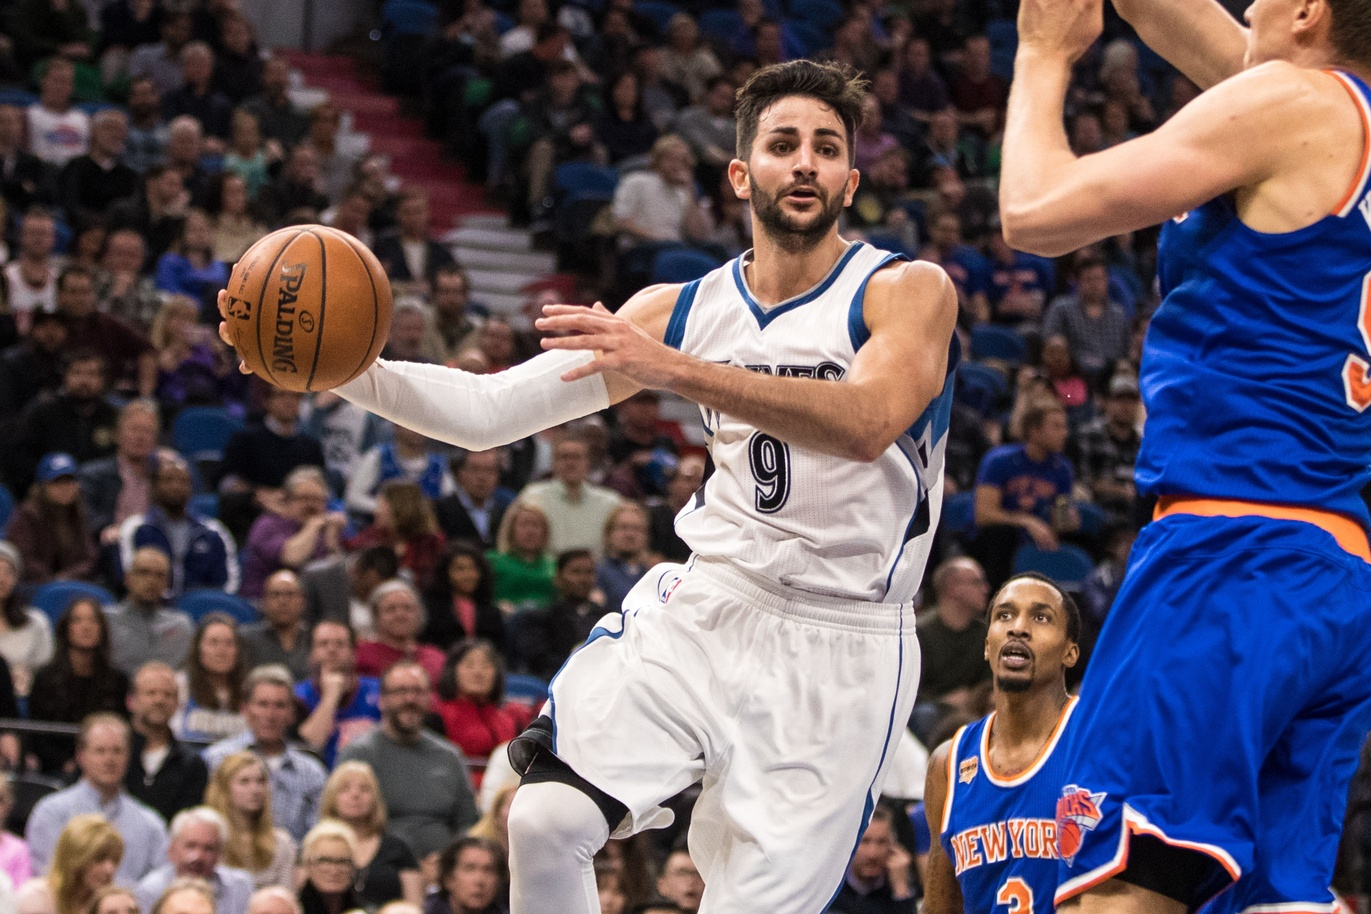 New York Knicks: What was all the Ricky Rubio fuss about?